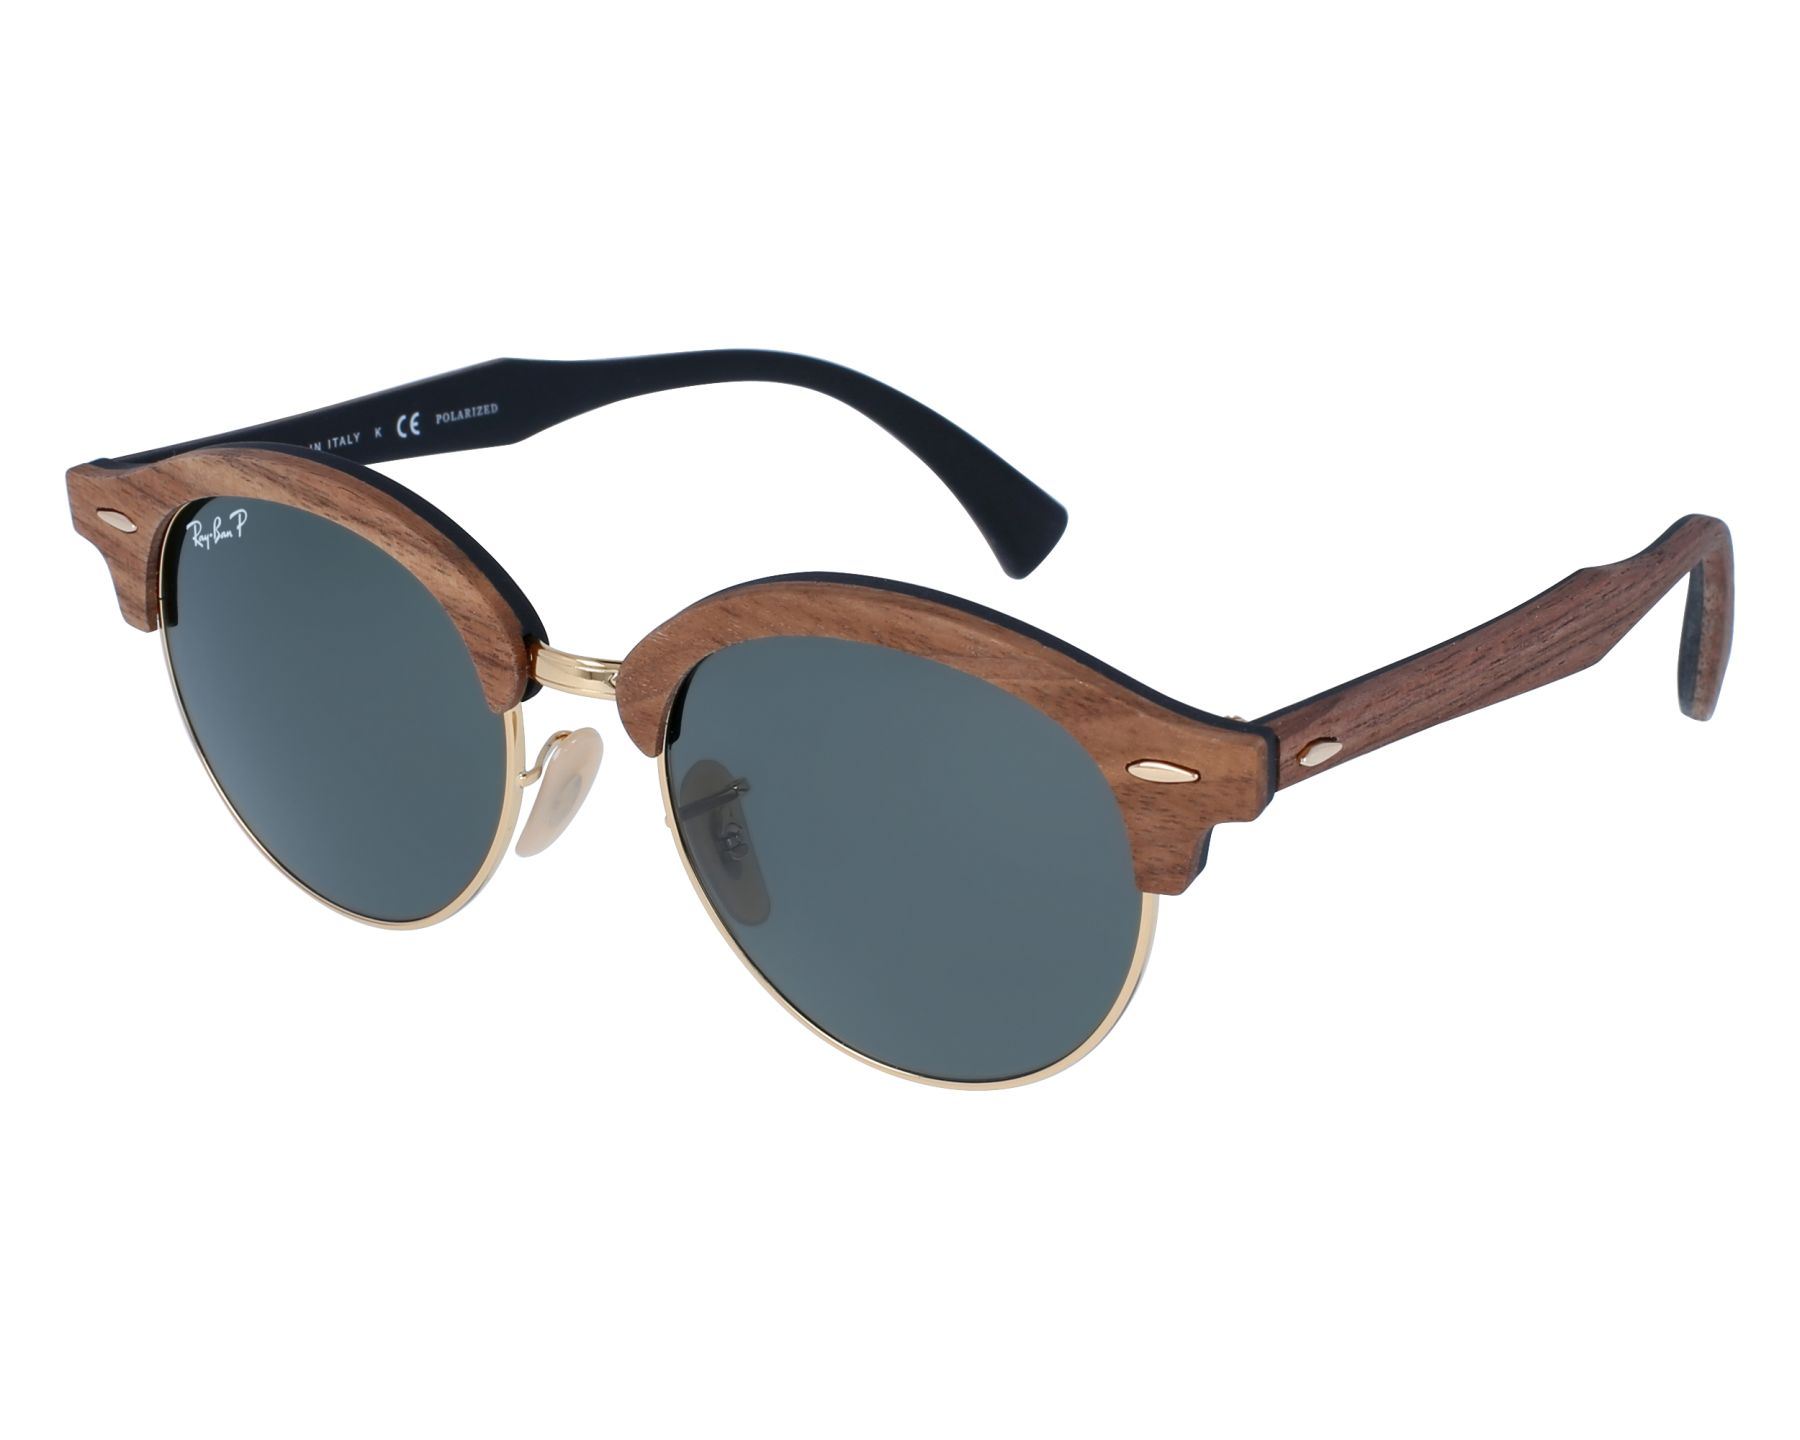 a9fd131f84 Ray-Ban Sunglasses Clubmaster Wood RB-4246-M 1181 58